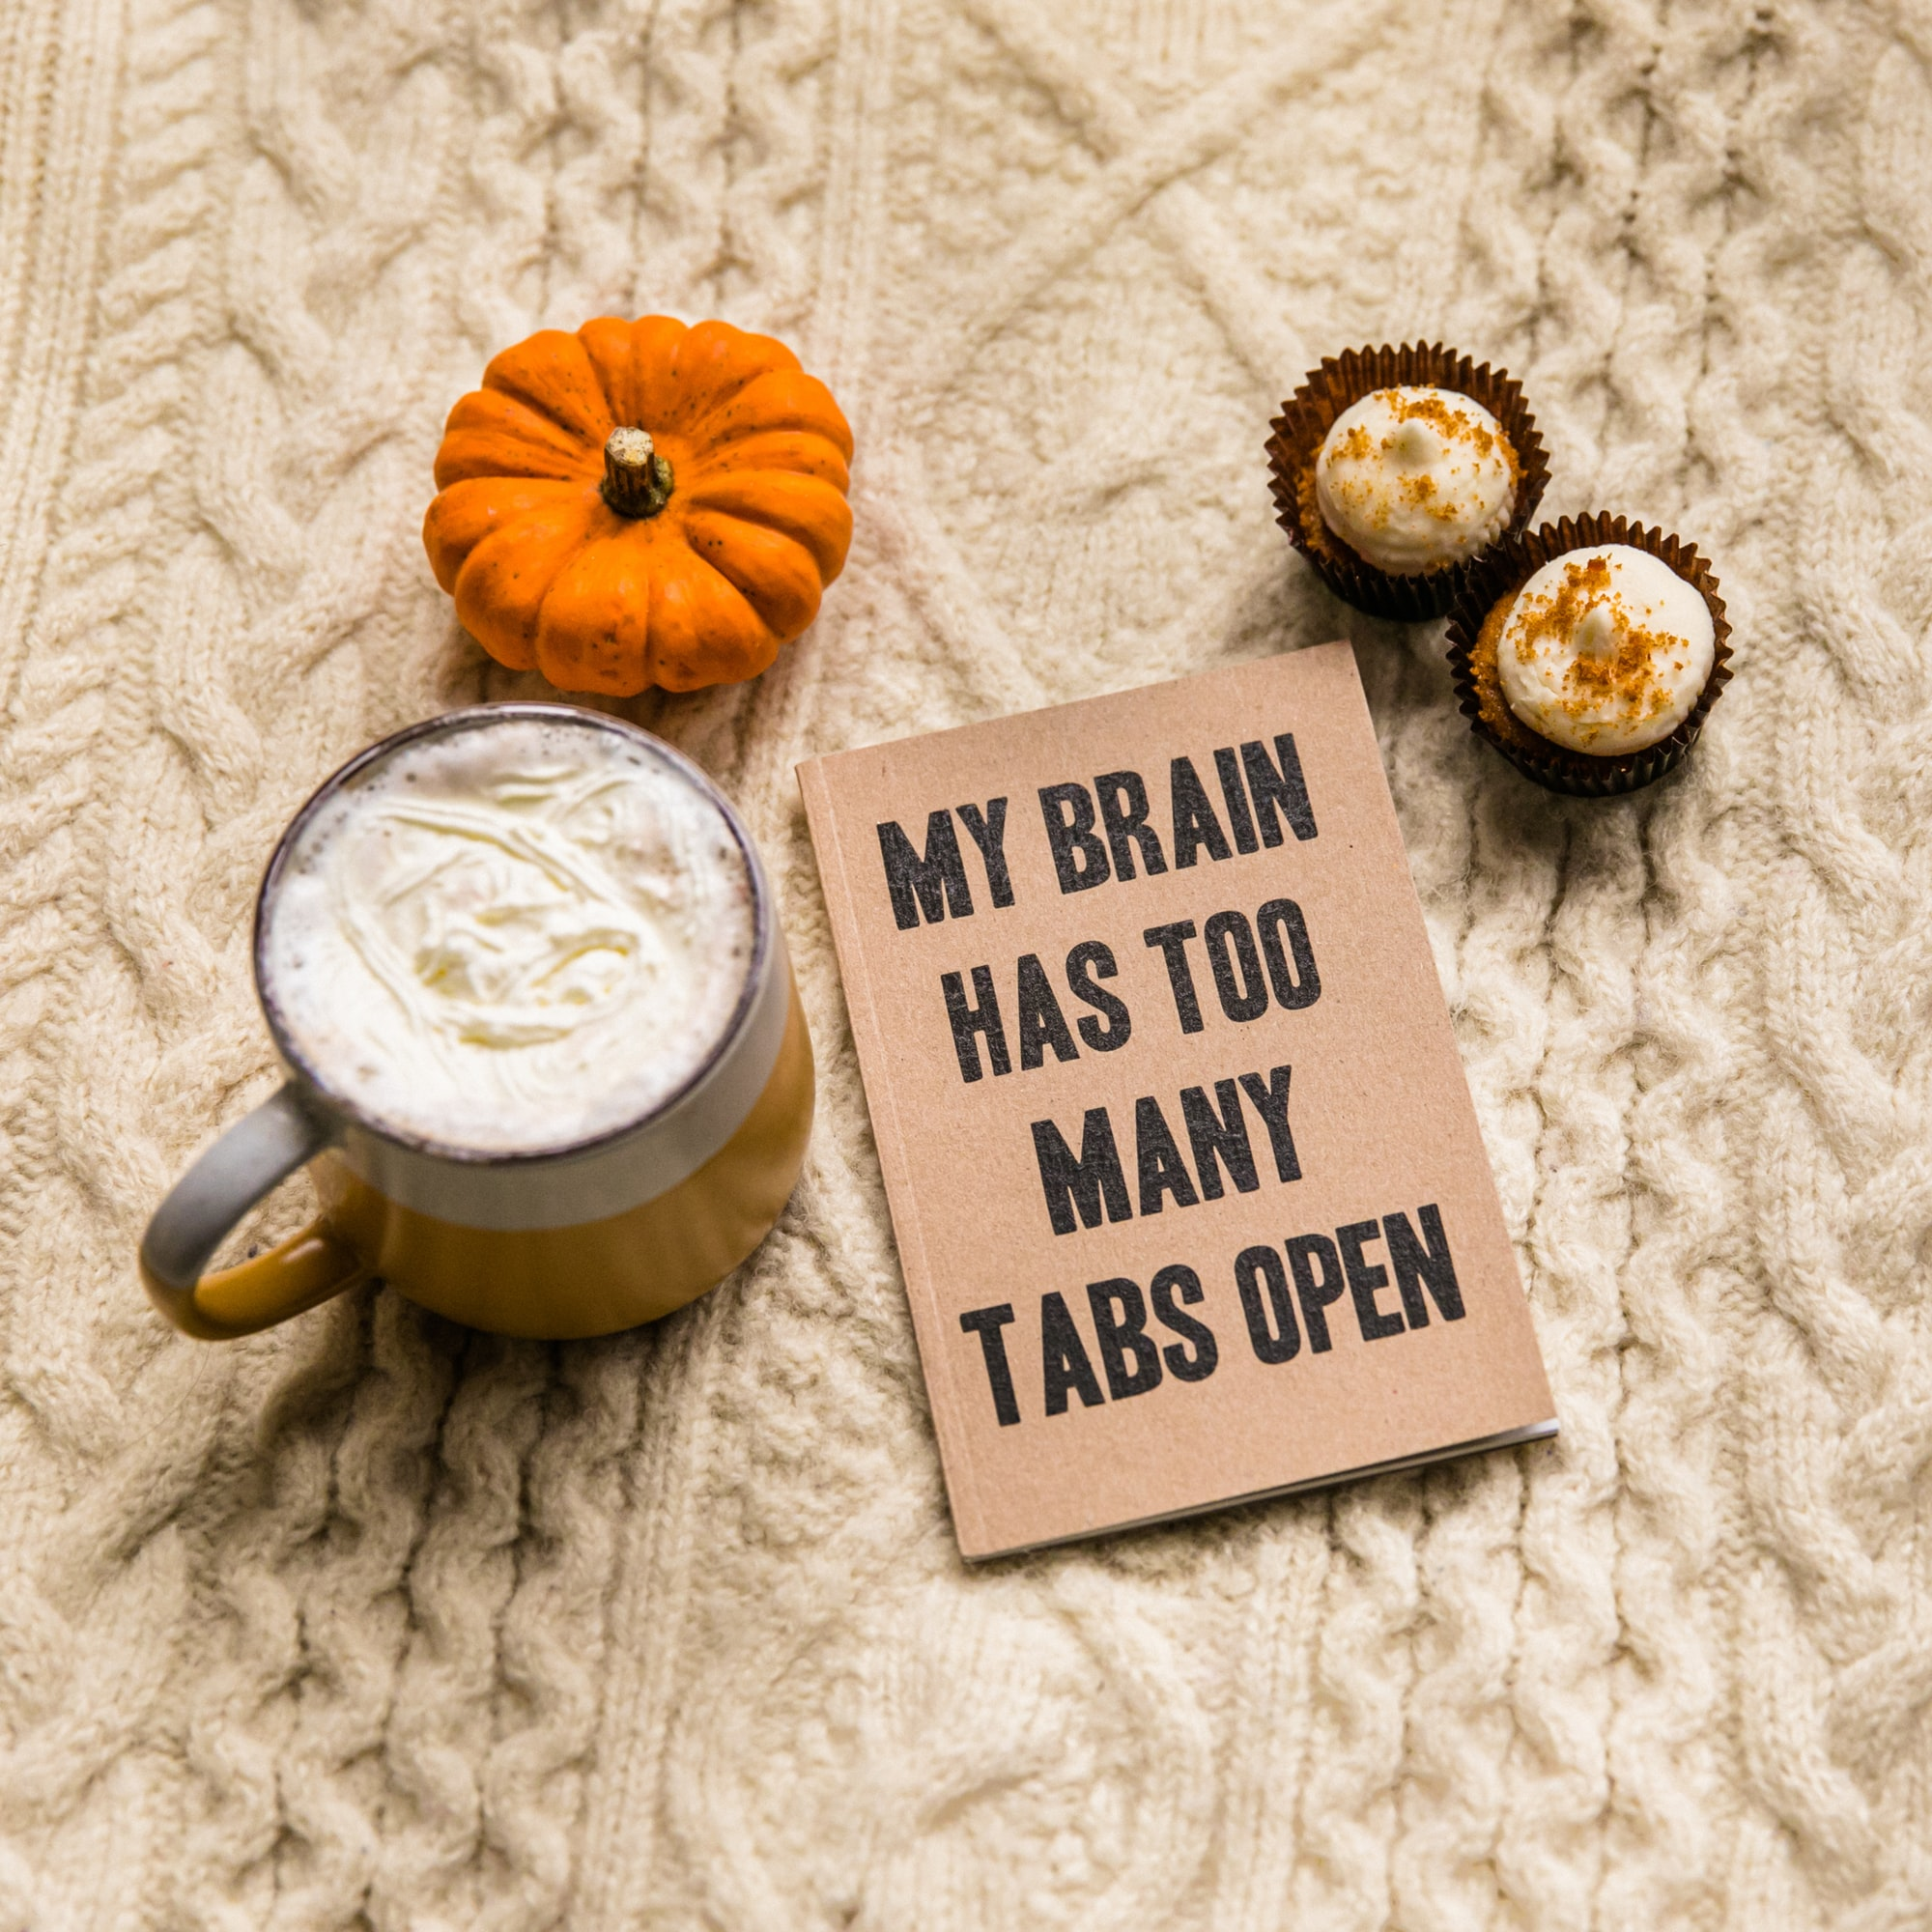 My brain has too many tabs open notebook alongside a pumpkin, cupcakes and a mug. Part of the Fireside in Autumn Collection.